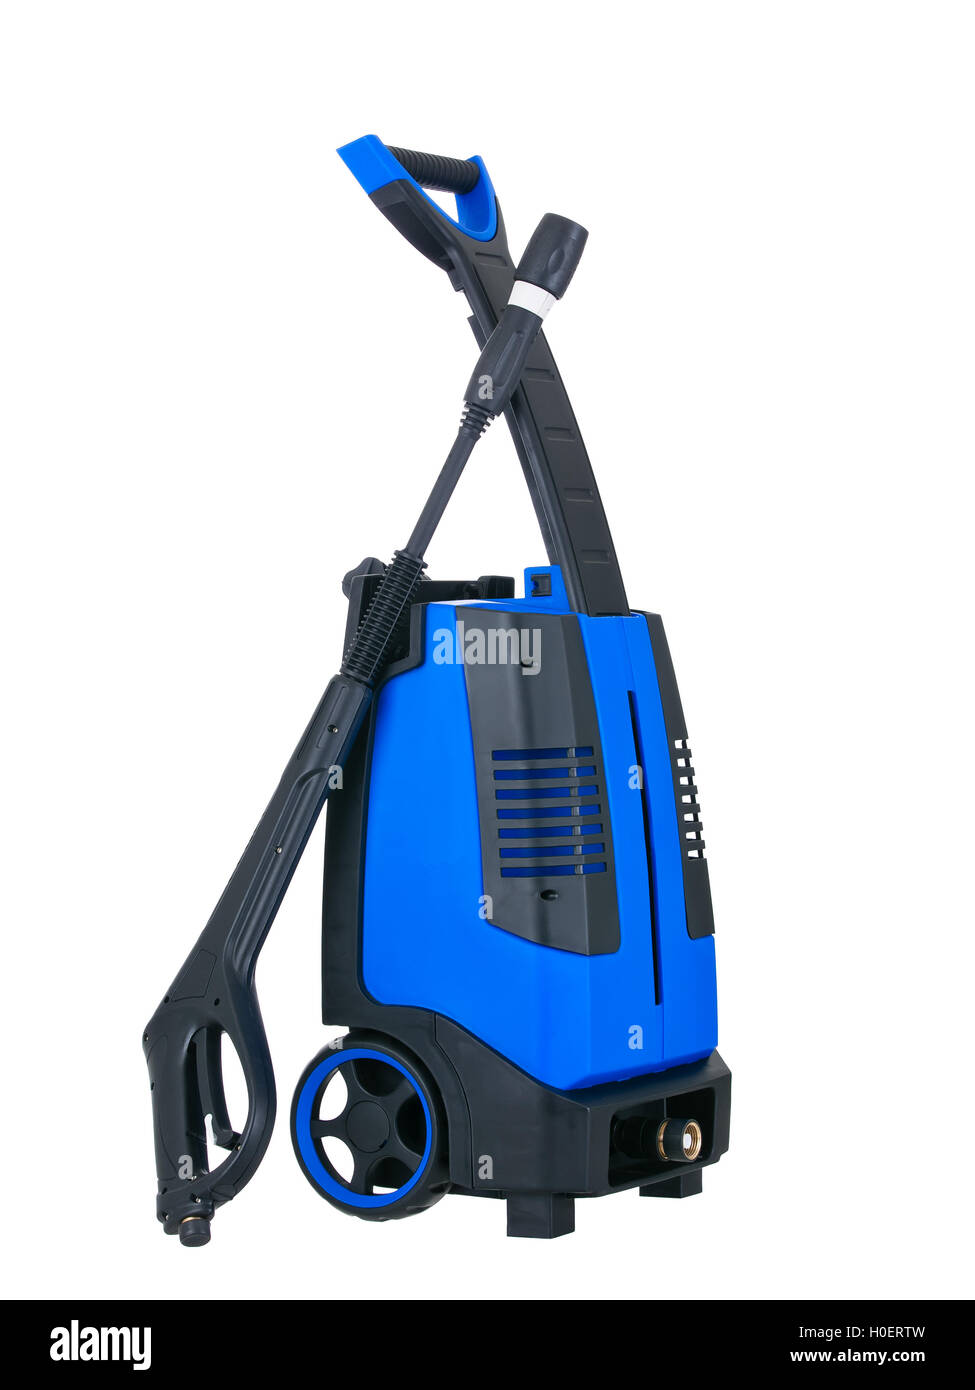 Blue pressure portable washer side view on pure white background - Stock Image